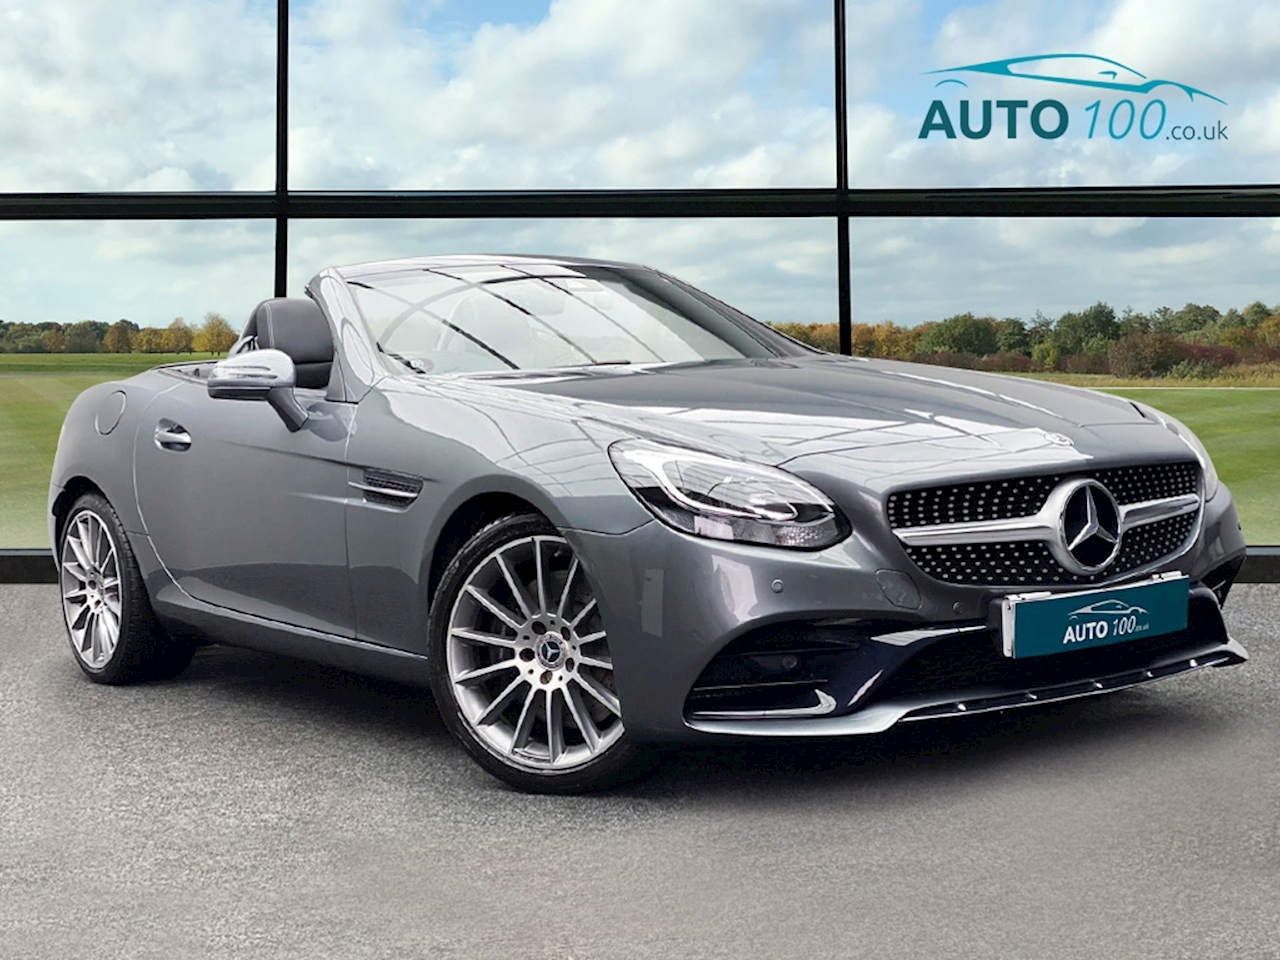 Mercedes-Benz SLC AMG Line Convertible 2.0 G-Tronic Petrol